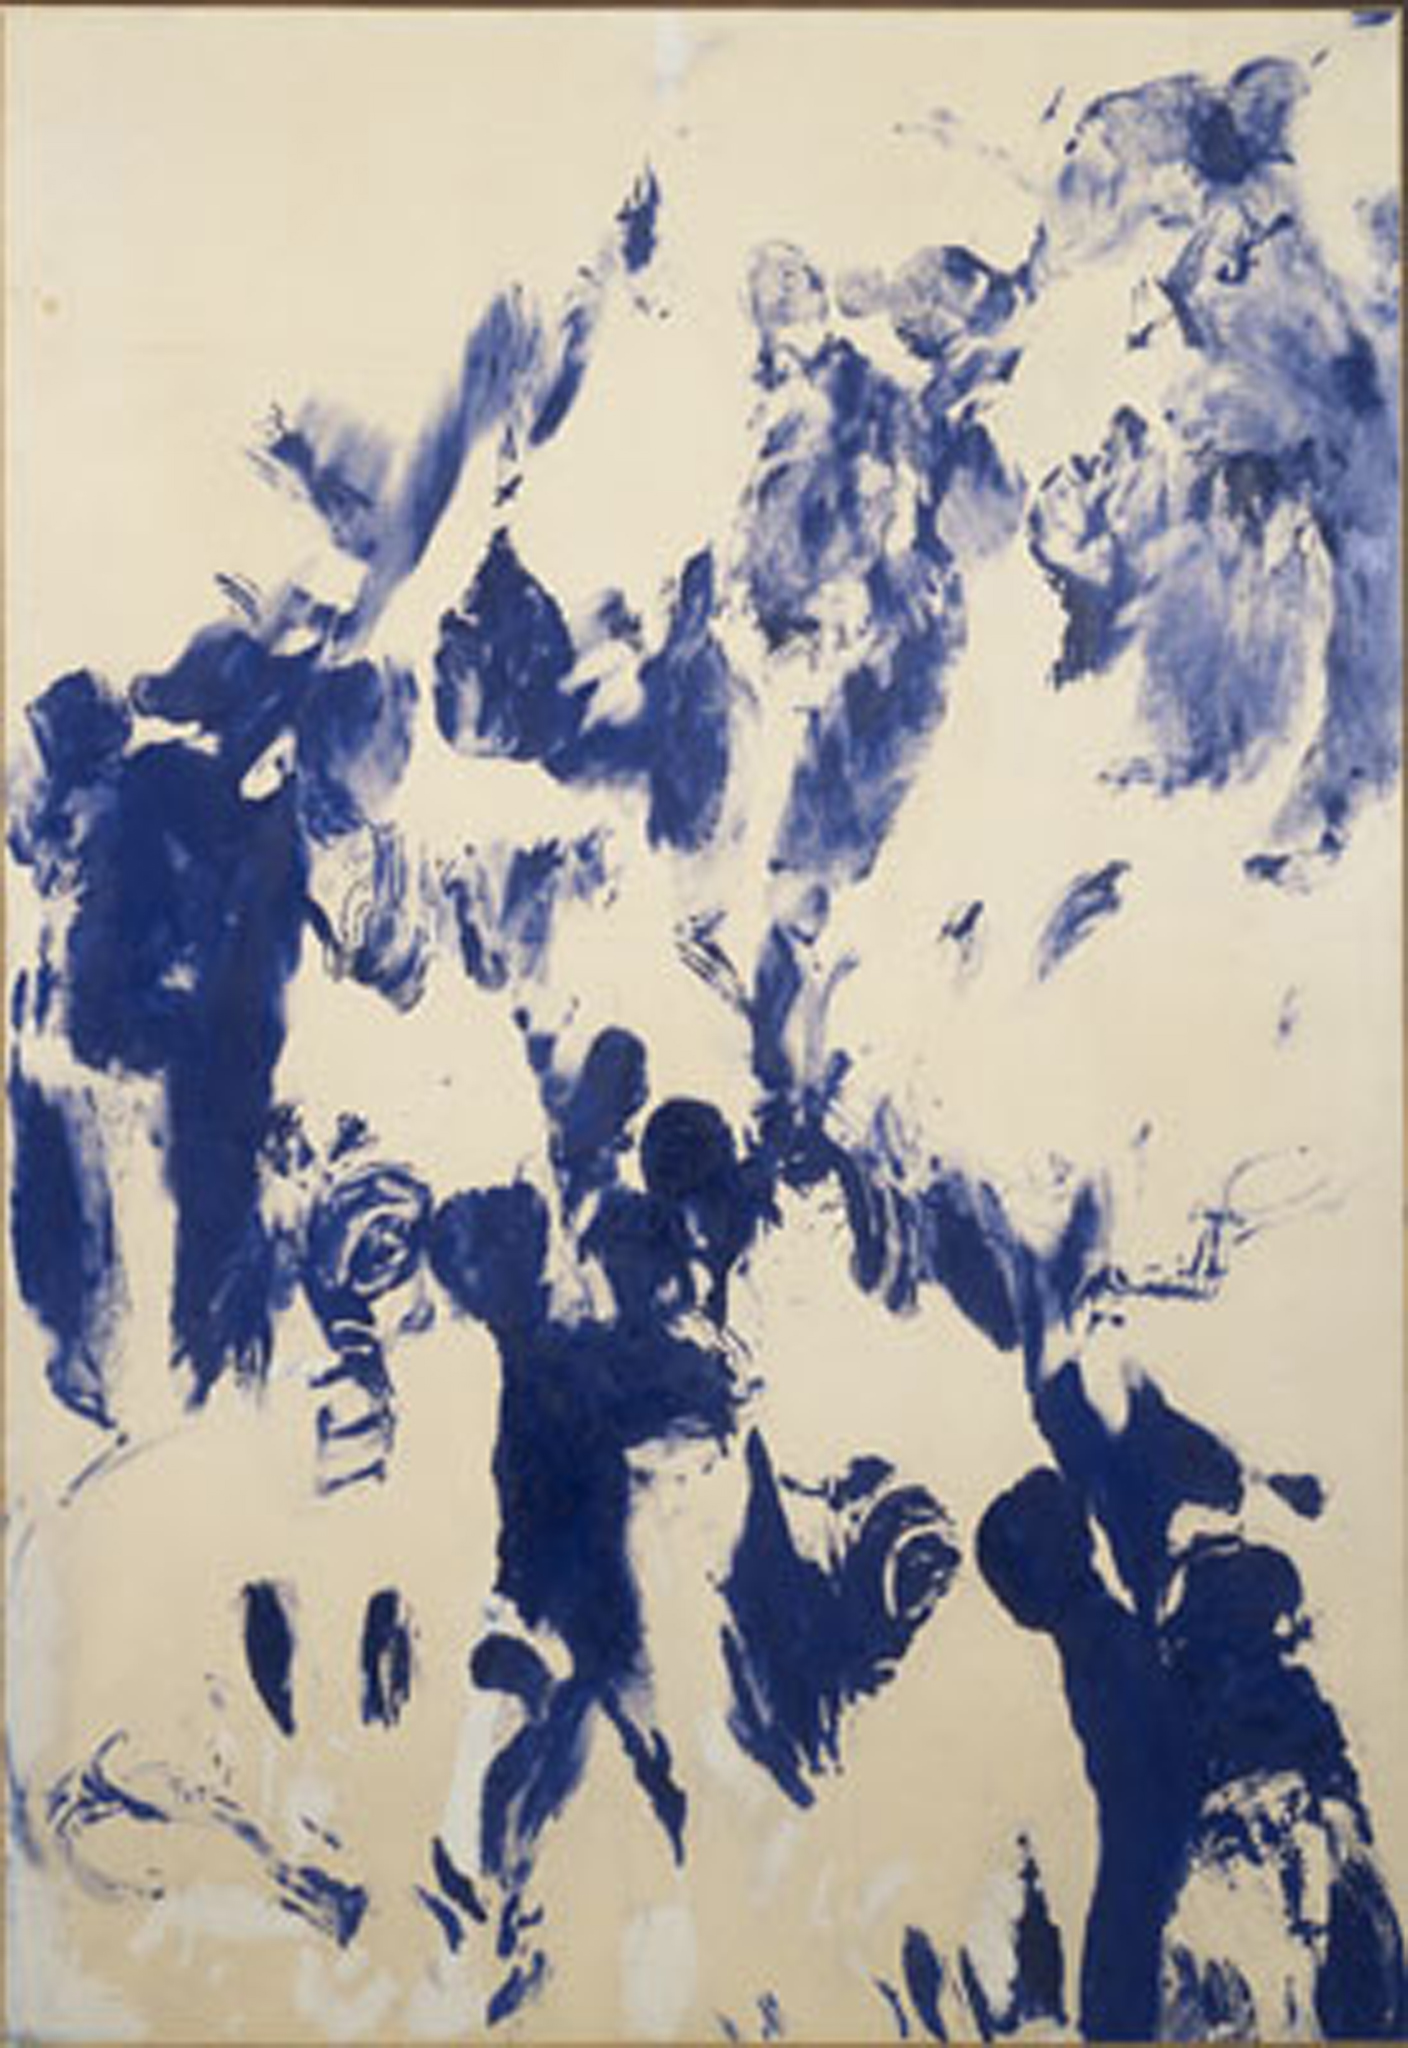 yves klein sans titre ant 154 untitled ant 154 courtesy yves klein and artists rights society ars new